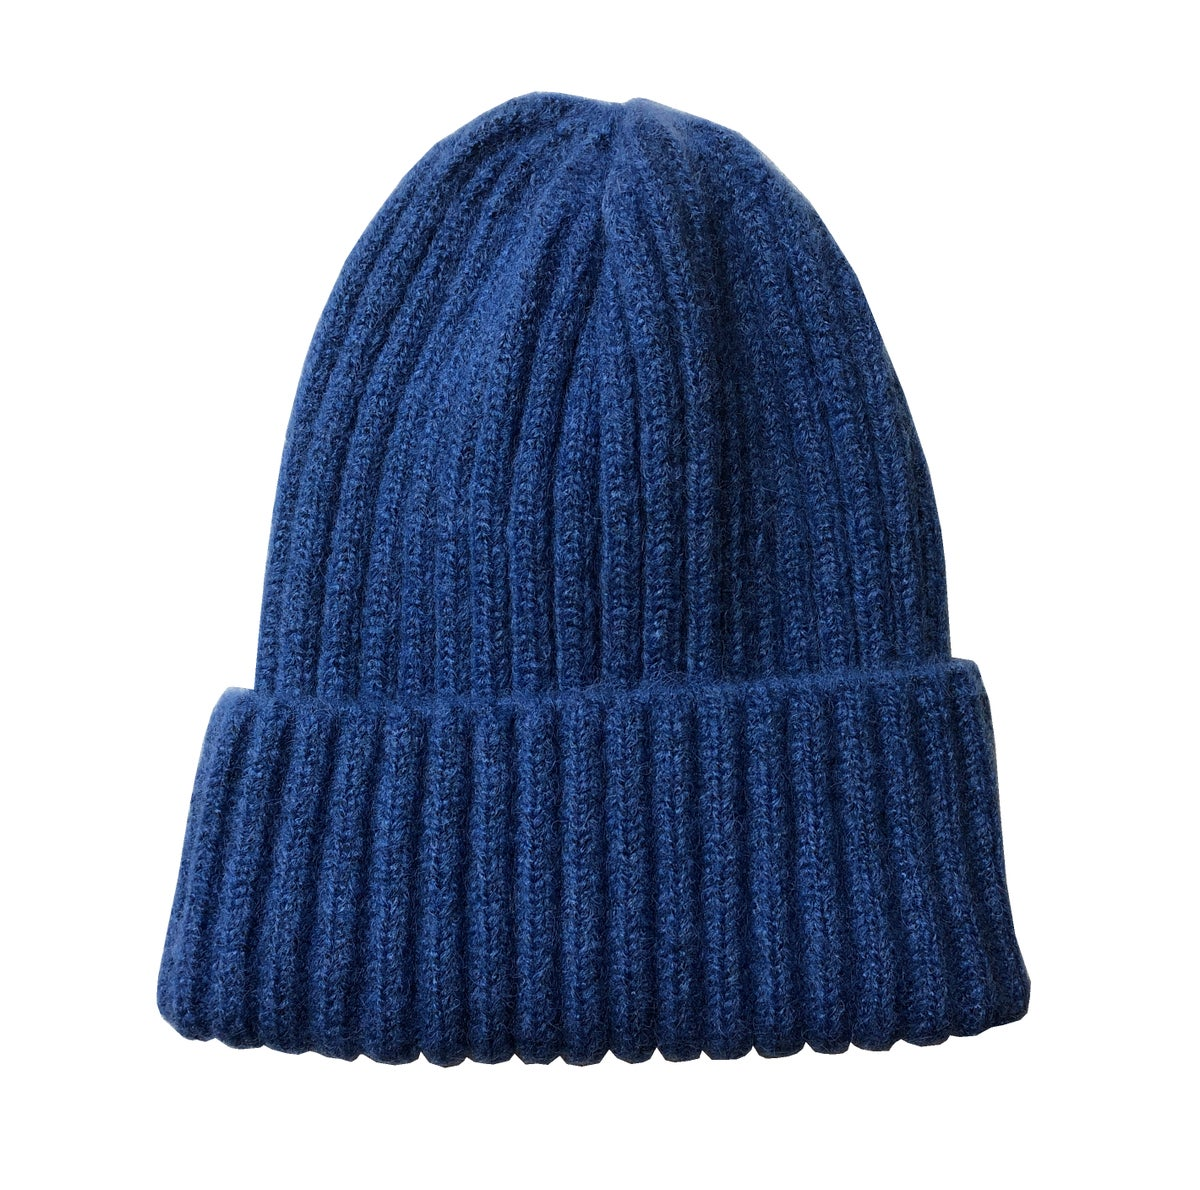 Image of Soft Fisherman's Beanie/ Watch Cap. Blue